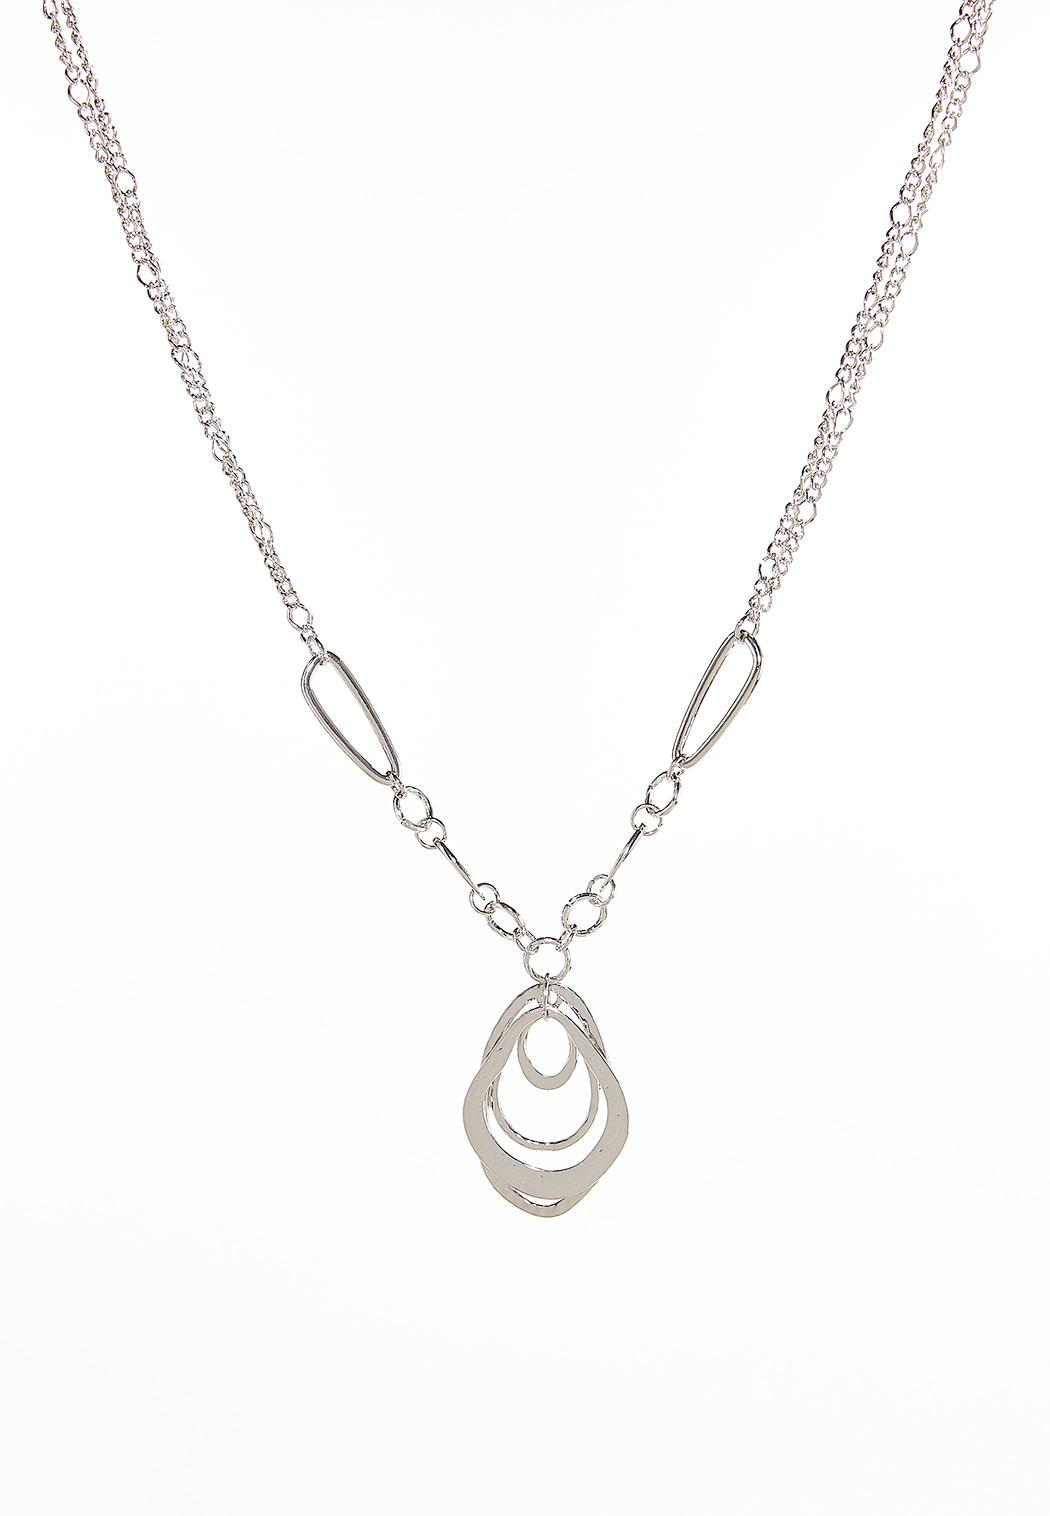 Oval Links Chain Pendant Necklace